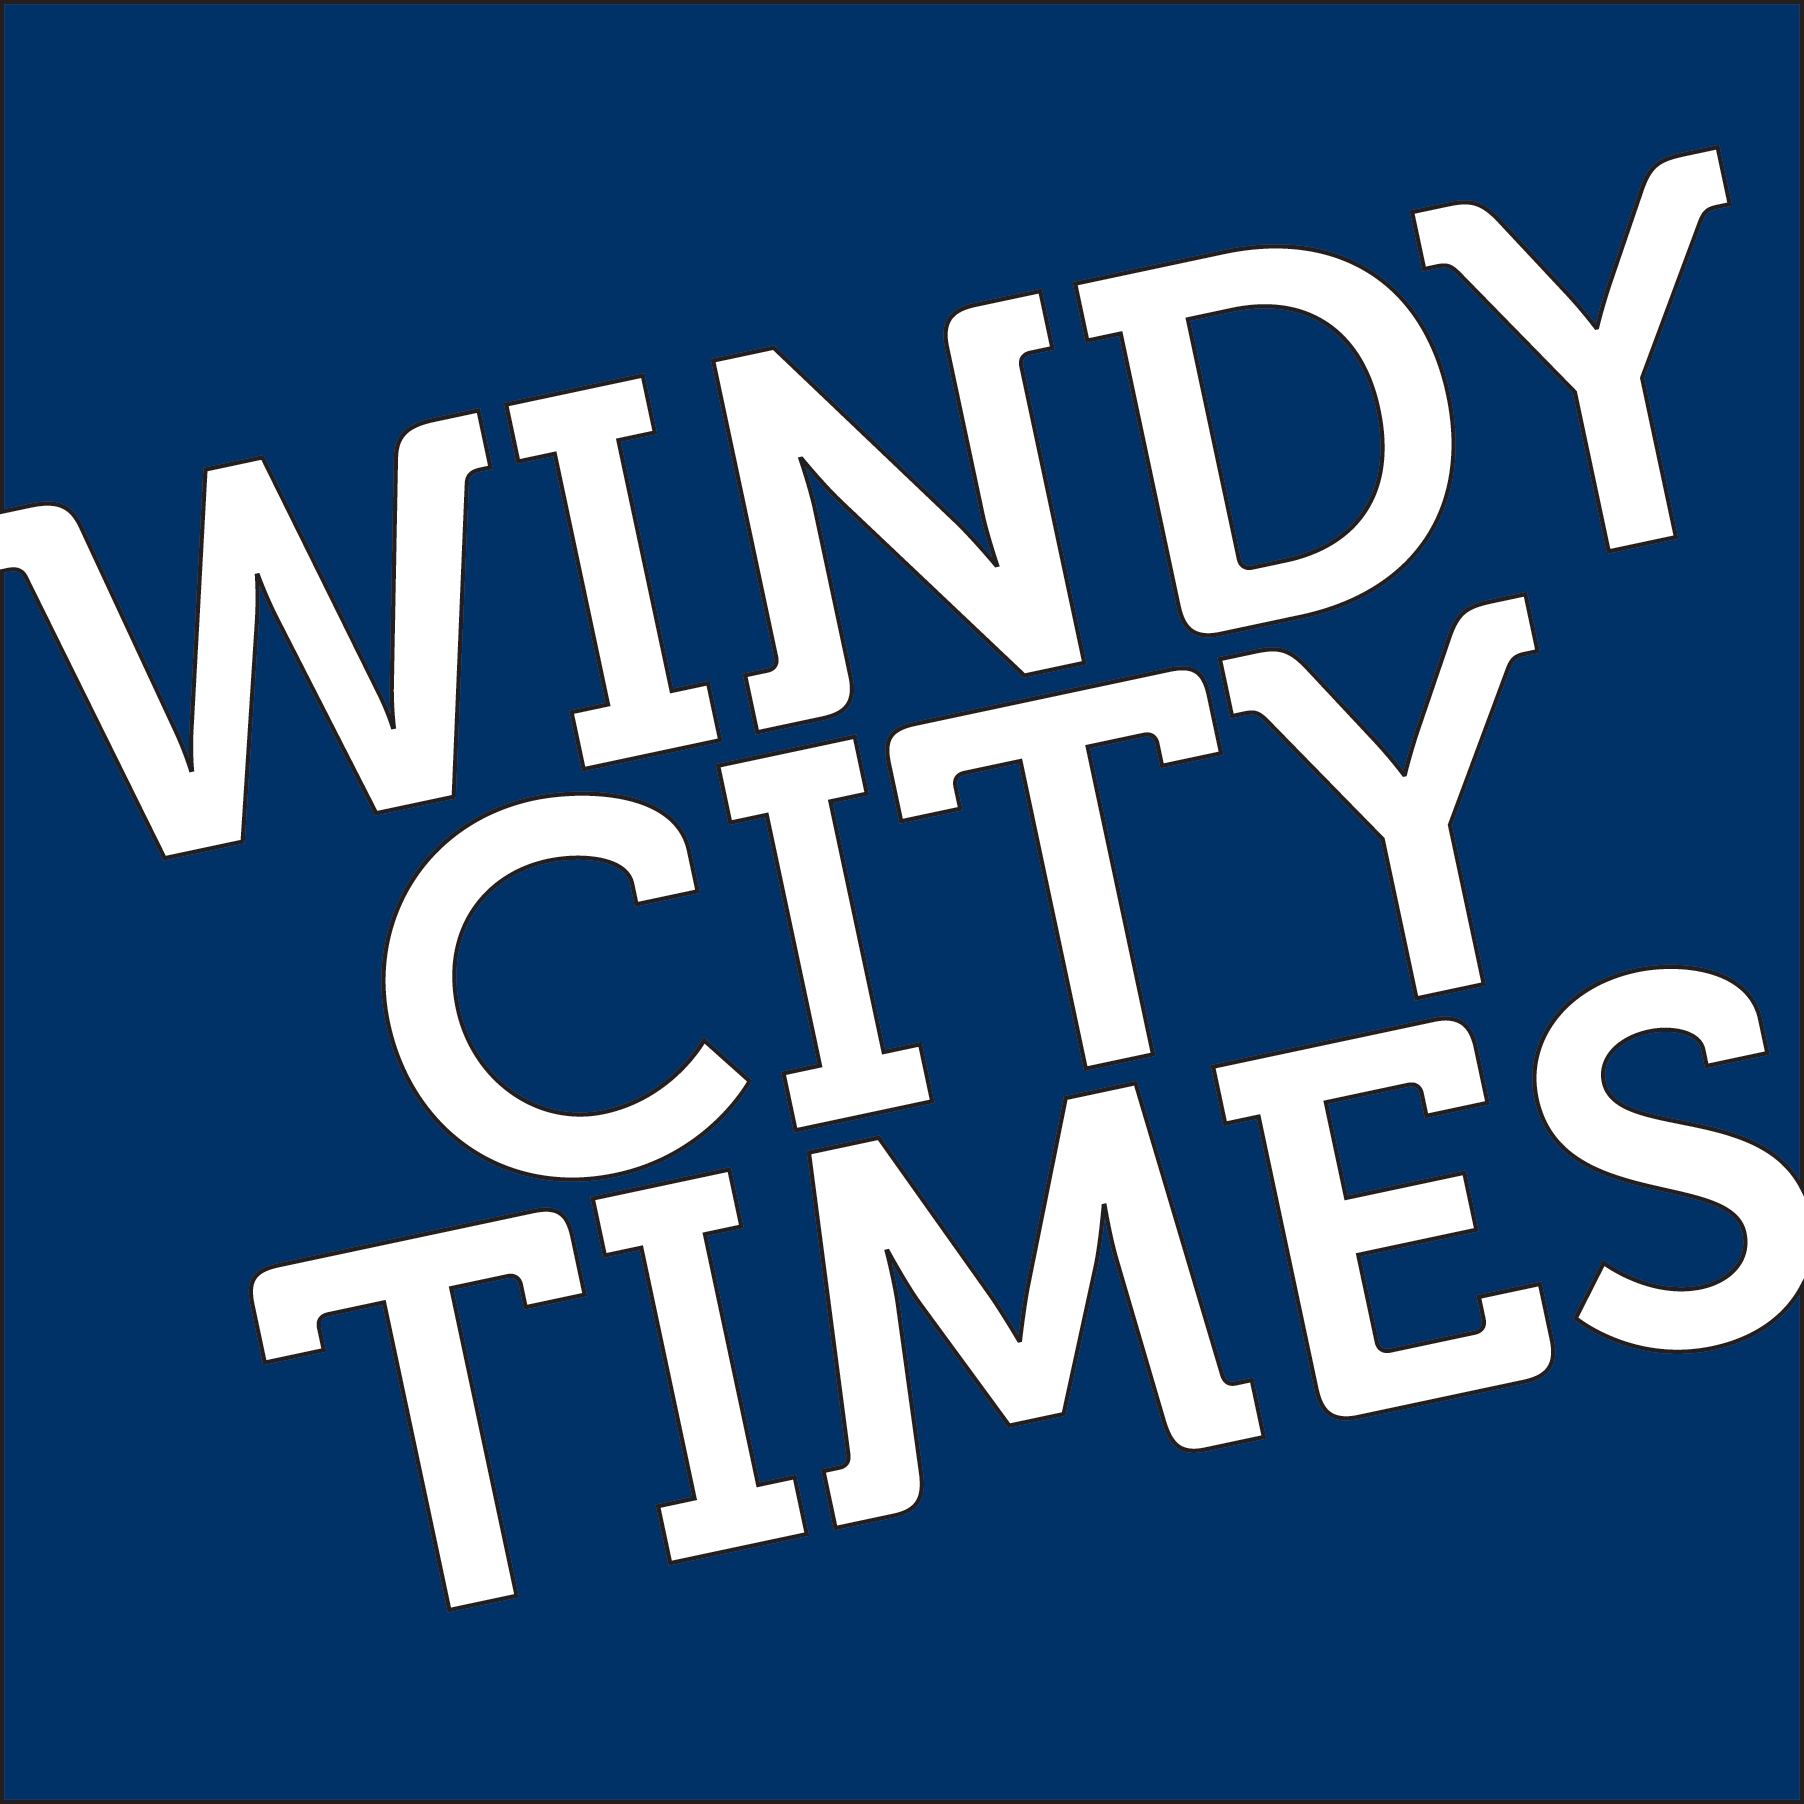 Windy City Times